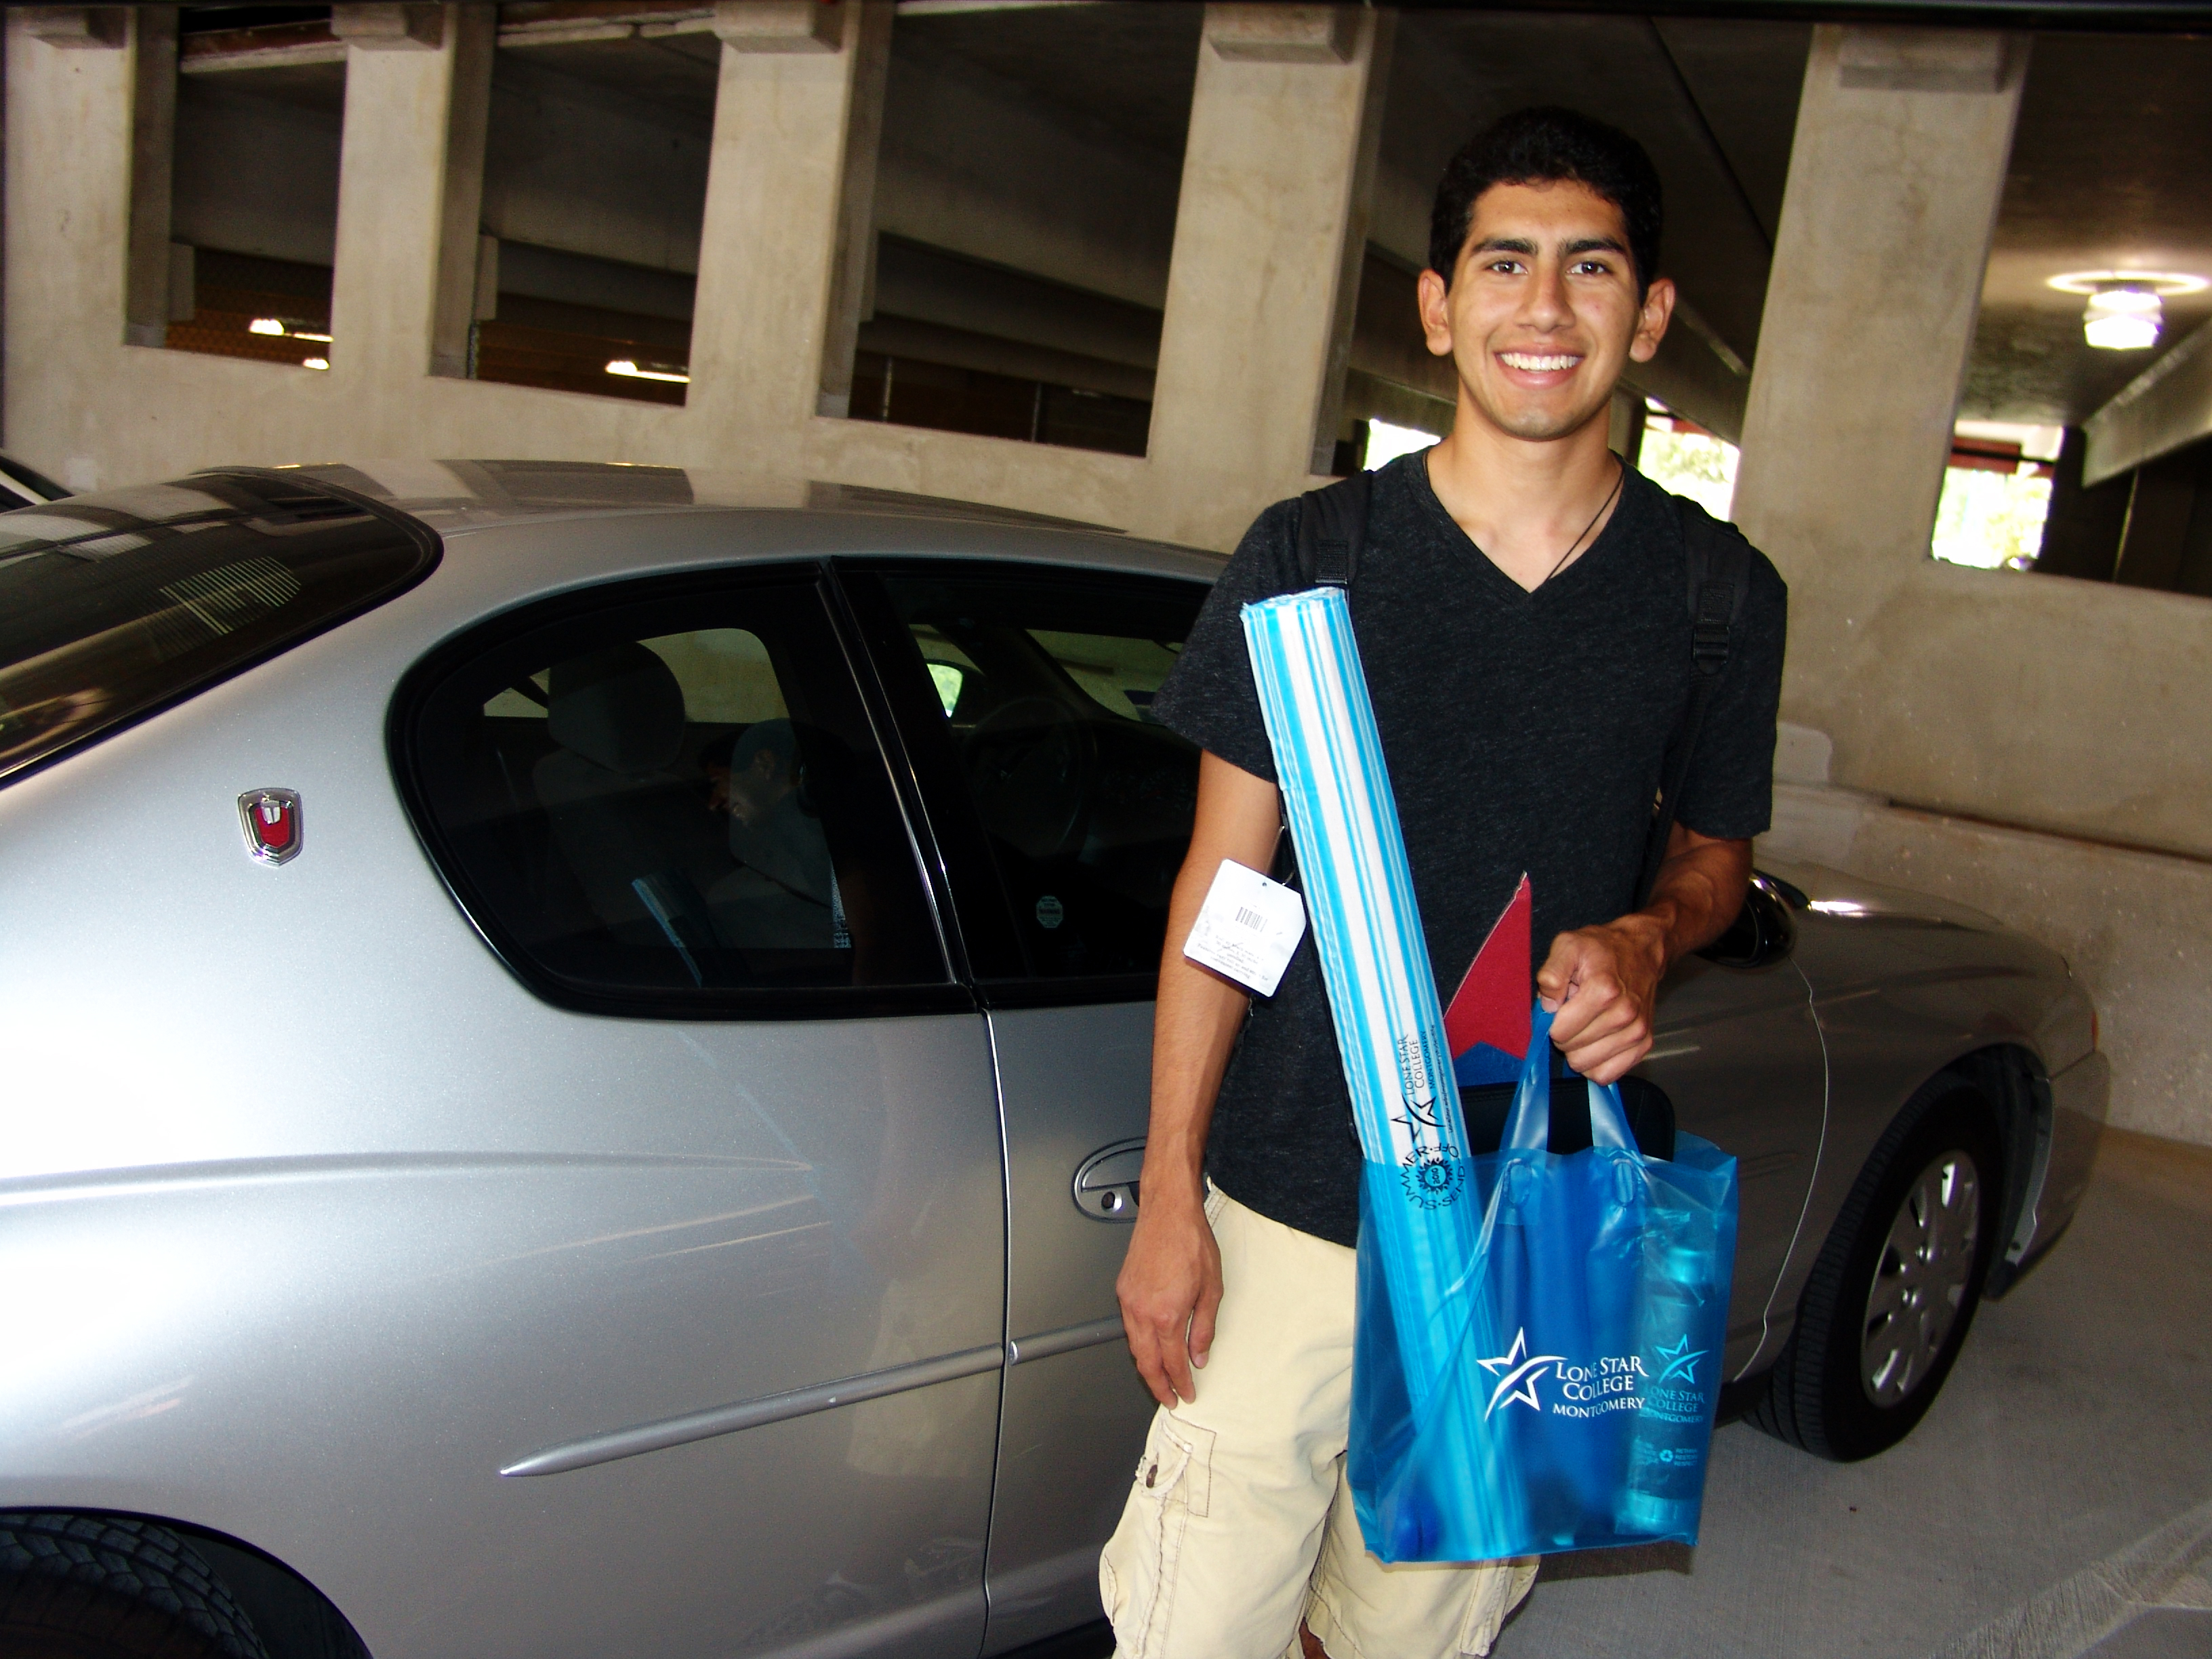 Daniel Gonzales, a student at Lone Star College-Montgomery, was the first to park in the college�s new 1,000-space, five-level parking garage, which opened on the first day of the fall semester. More than 12,500 students are enrolled at LSC-Montgomery this fall.